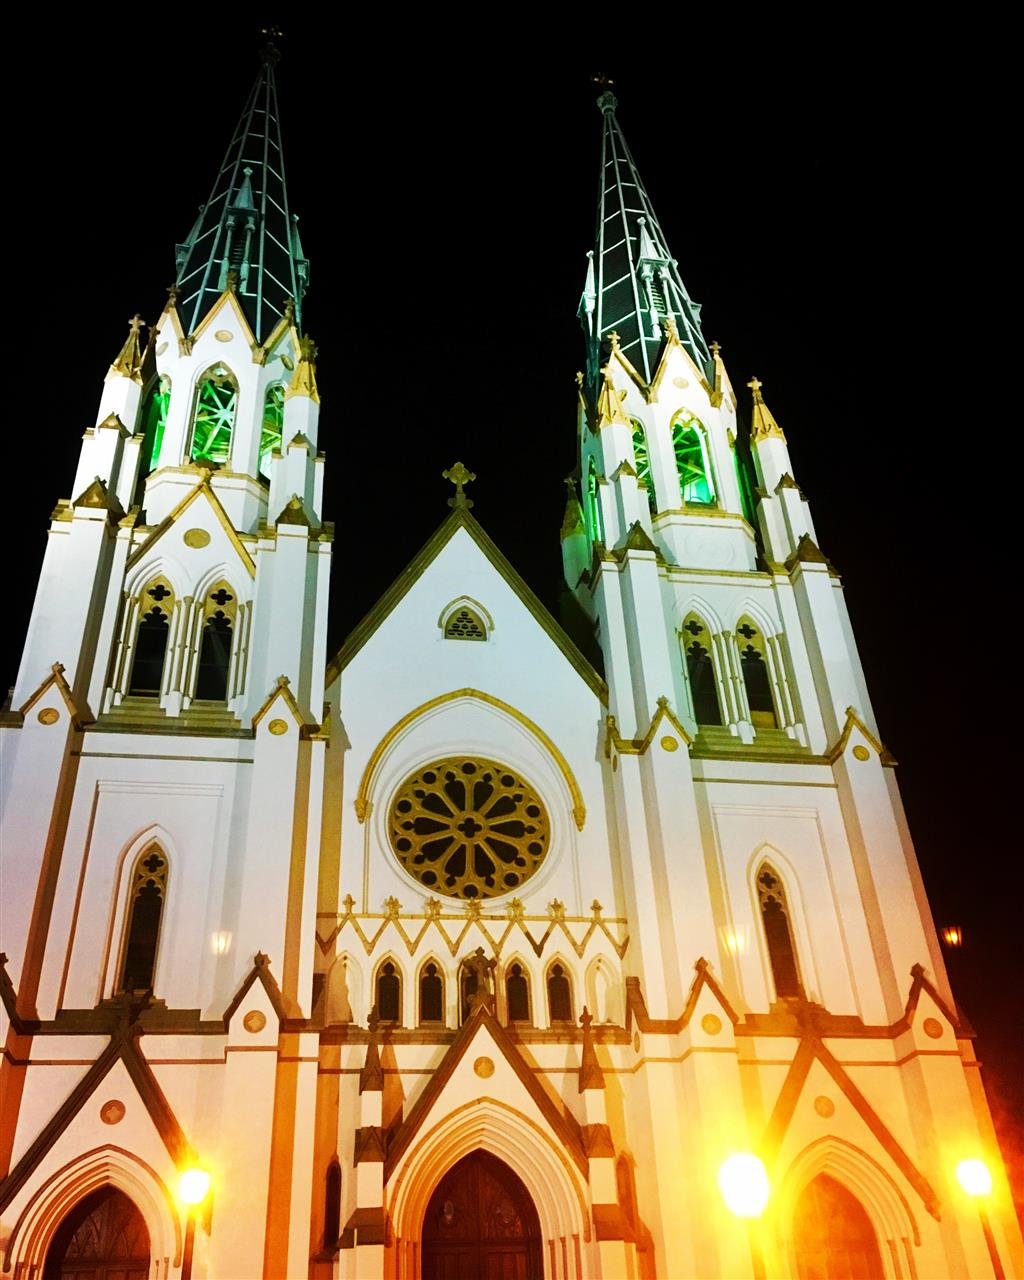 The Cathedral lit up at night in green, waiting on the arrival of St. Patrick